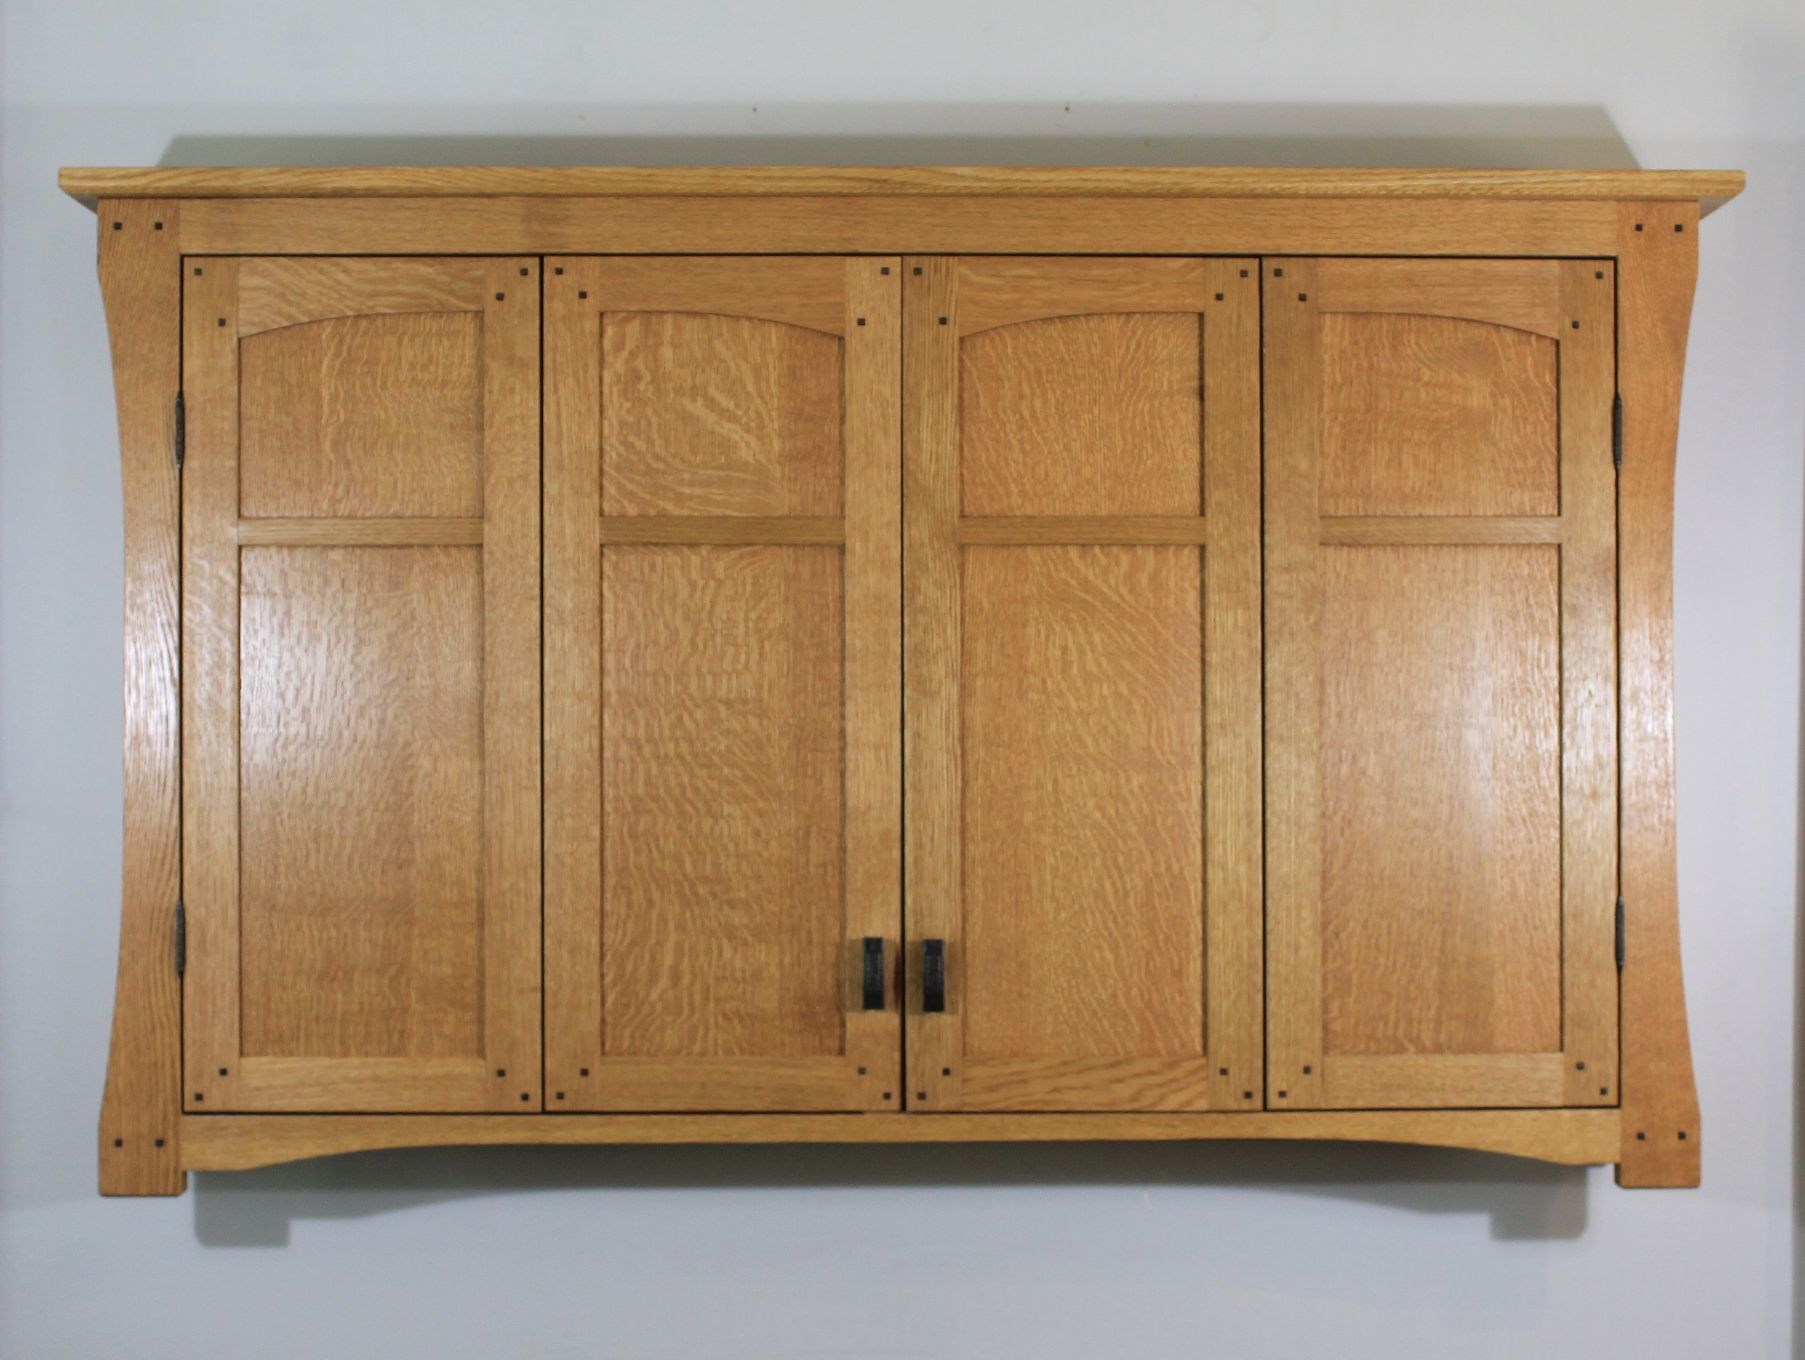 Buy a Hand Made Mission Style Tv Wall Cabinet In Solid ...